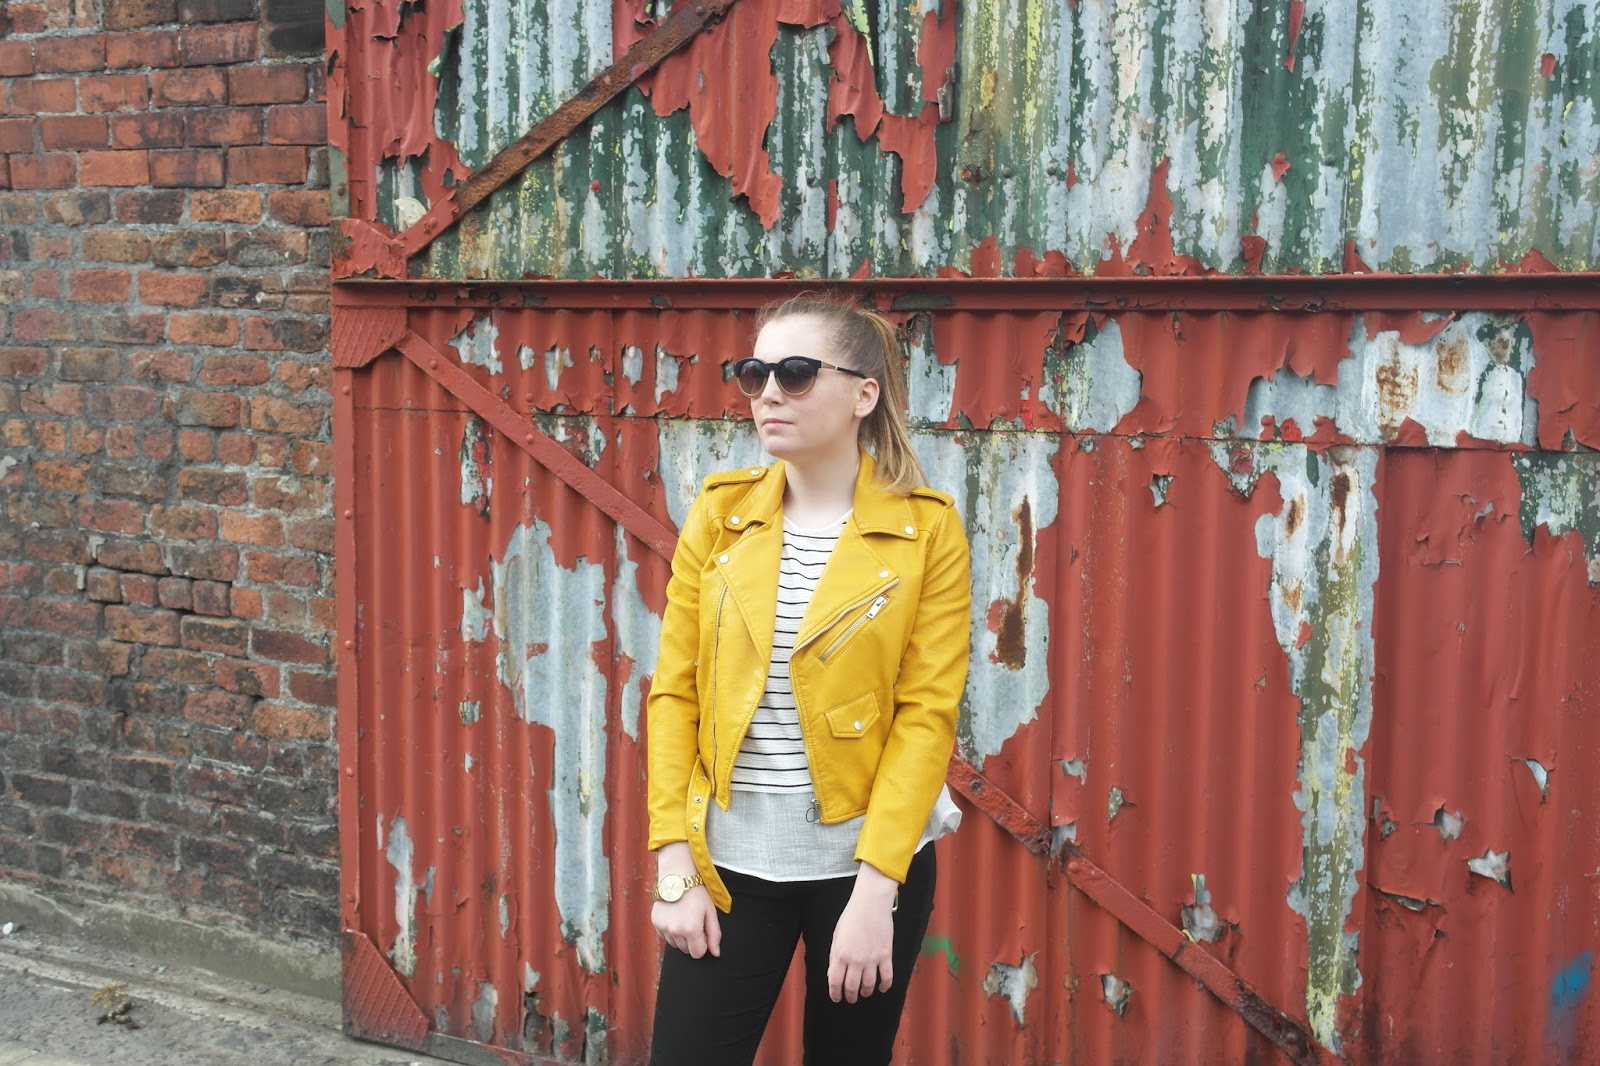 Leather jacket yellow zara - Ootd Zara Yellow Leather Jacket Why Hello Its Been Well Over 2 Months Since I Have Blogged Over On This Slice Of The Web And I Am Terribly Sorry I Have